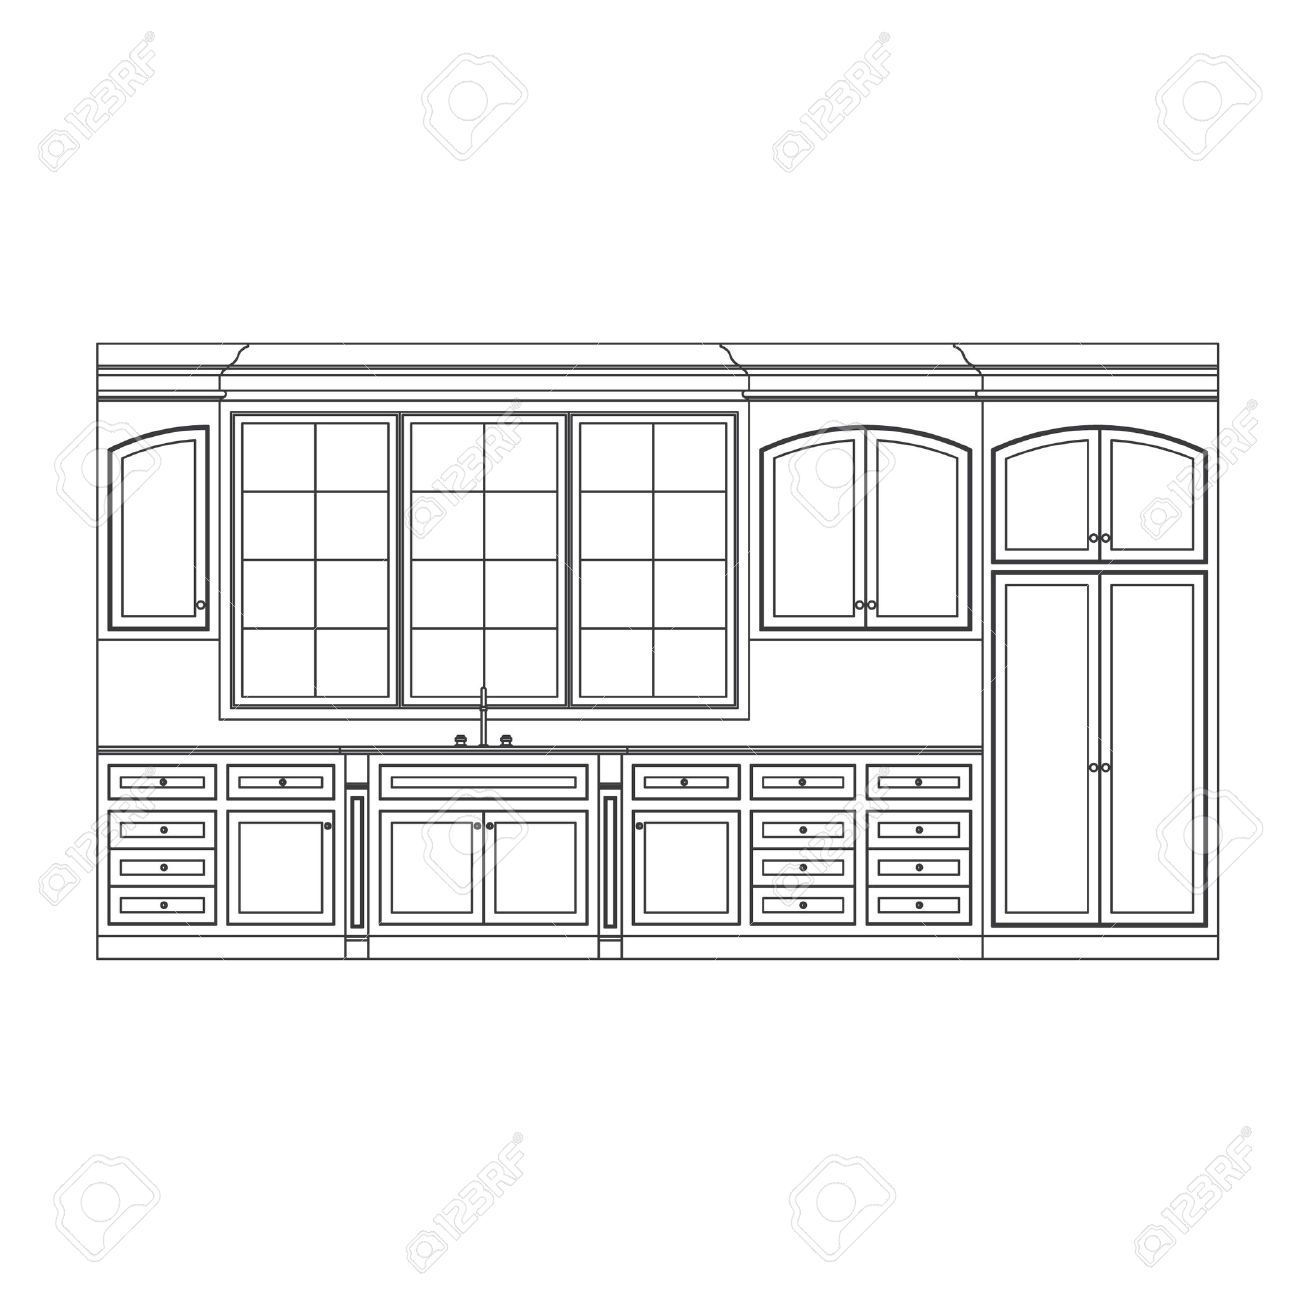 Kitchen Elevation Line Drawing, Cabinets, Drawers, Appliances Stock Vector    6959792